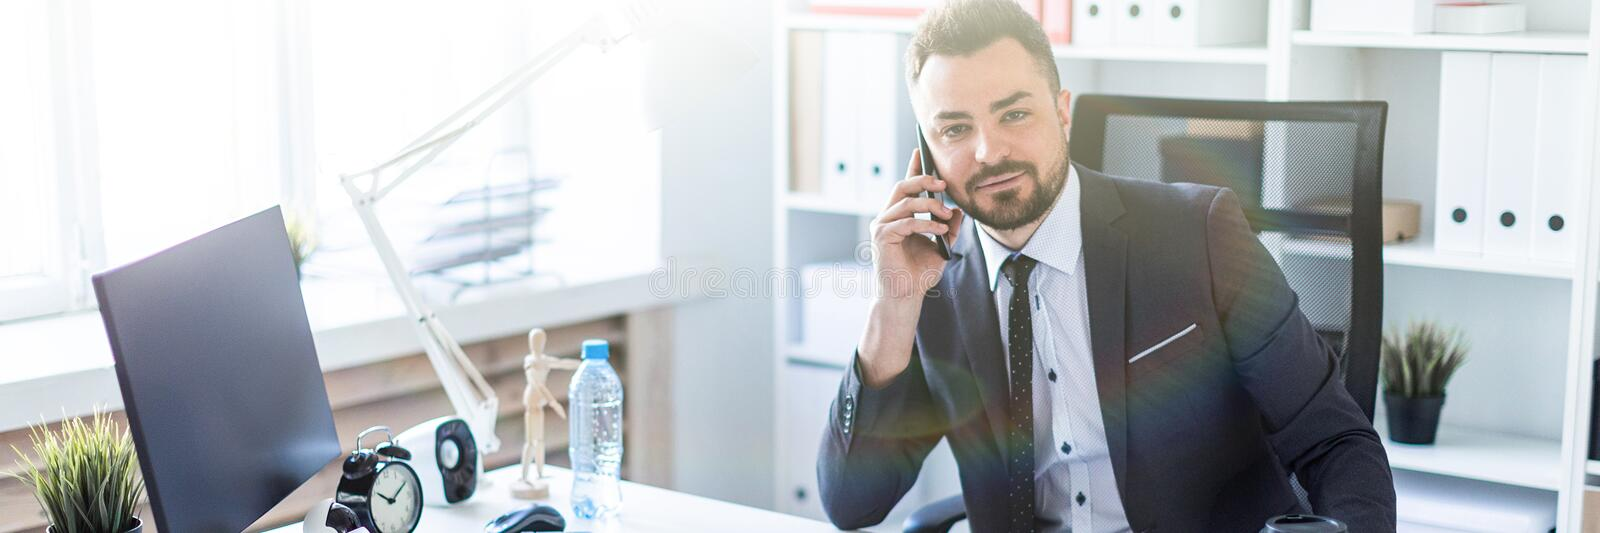 A man is sitting at the desk at the office, talking on the phone and looking straight. A bearded man with a business suit is working in a bright office. photo stock image